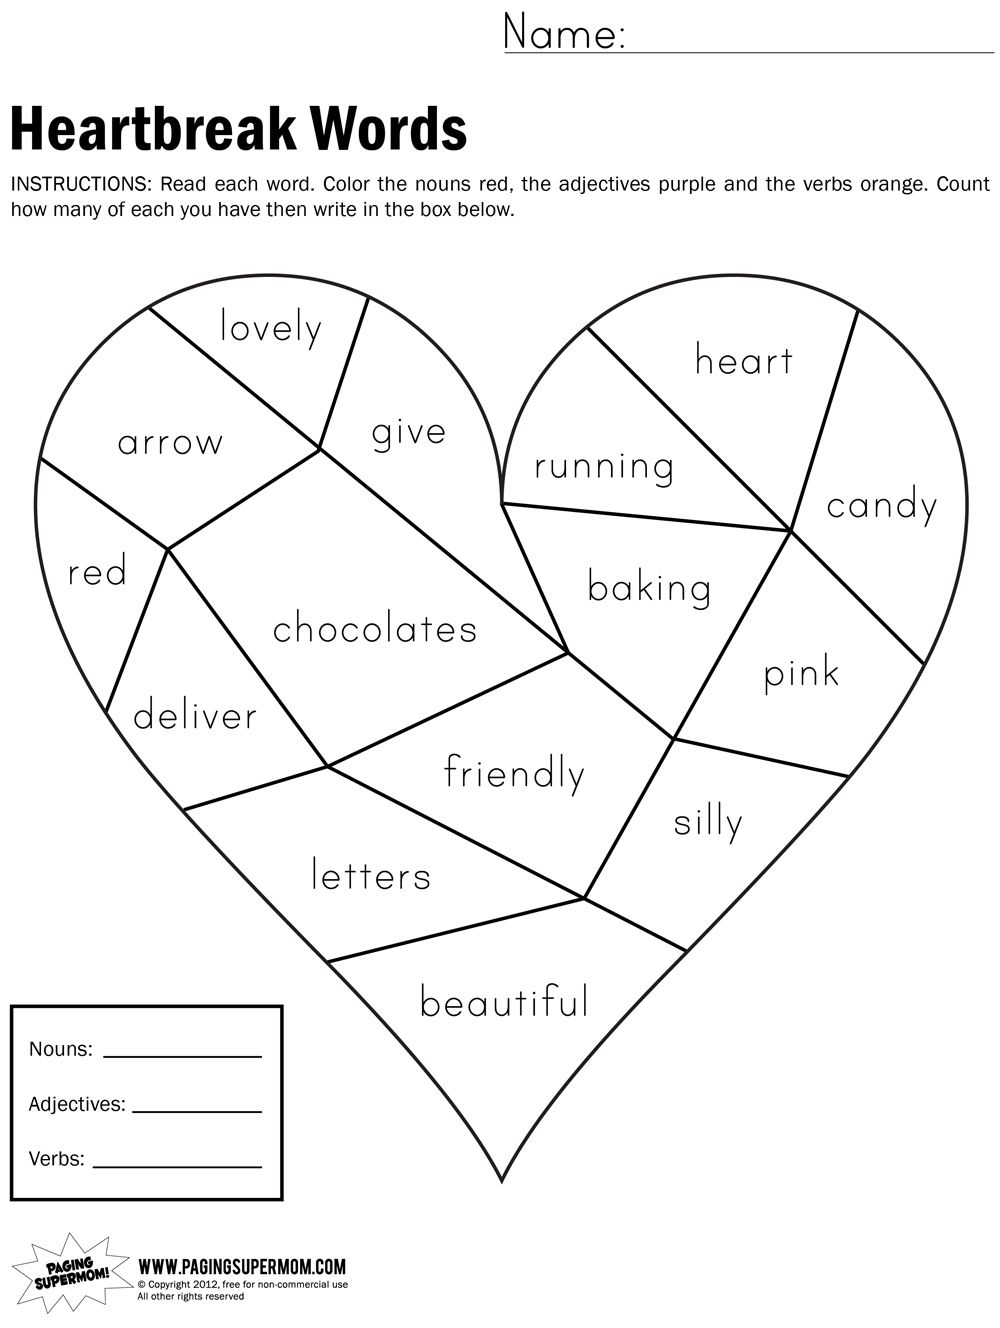 Worksheets Third Grade Reading Printable Worksheets heartbreak words free printable worksheet word worksheet